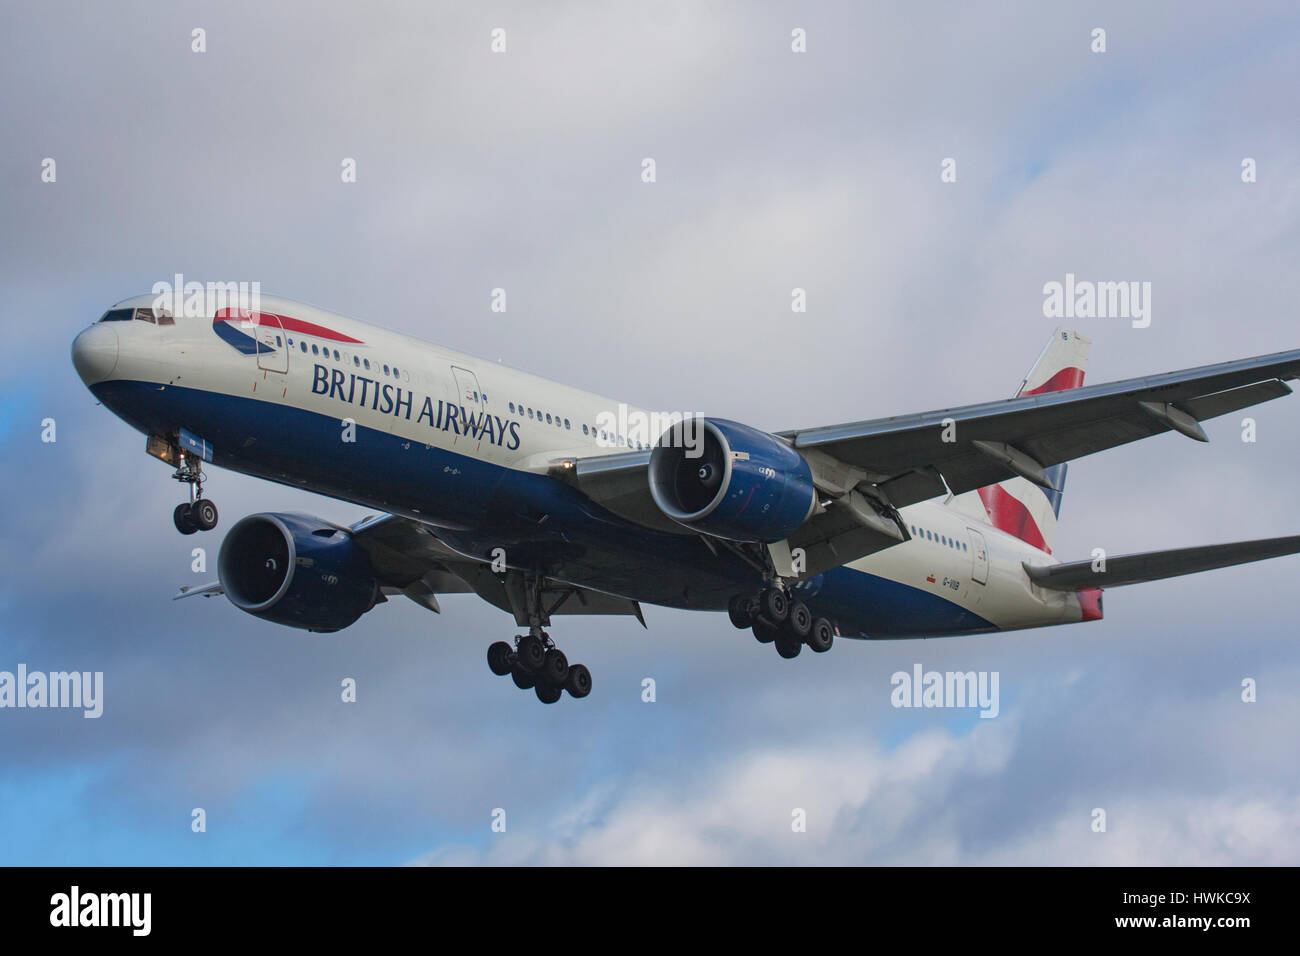 British Airways Boeing 777-236/ER landing at London Heathrow Airport, UK - Stock Image